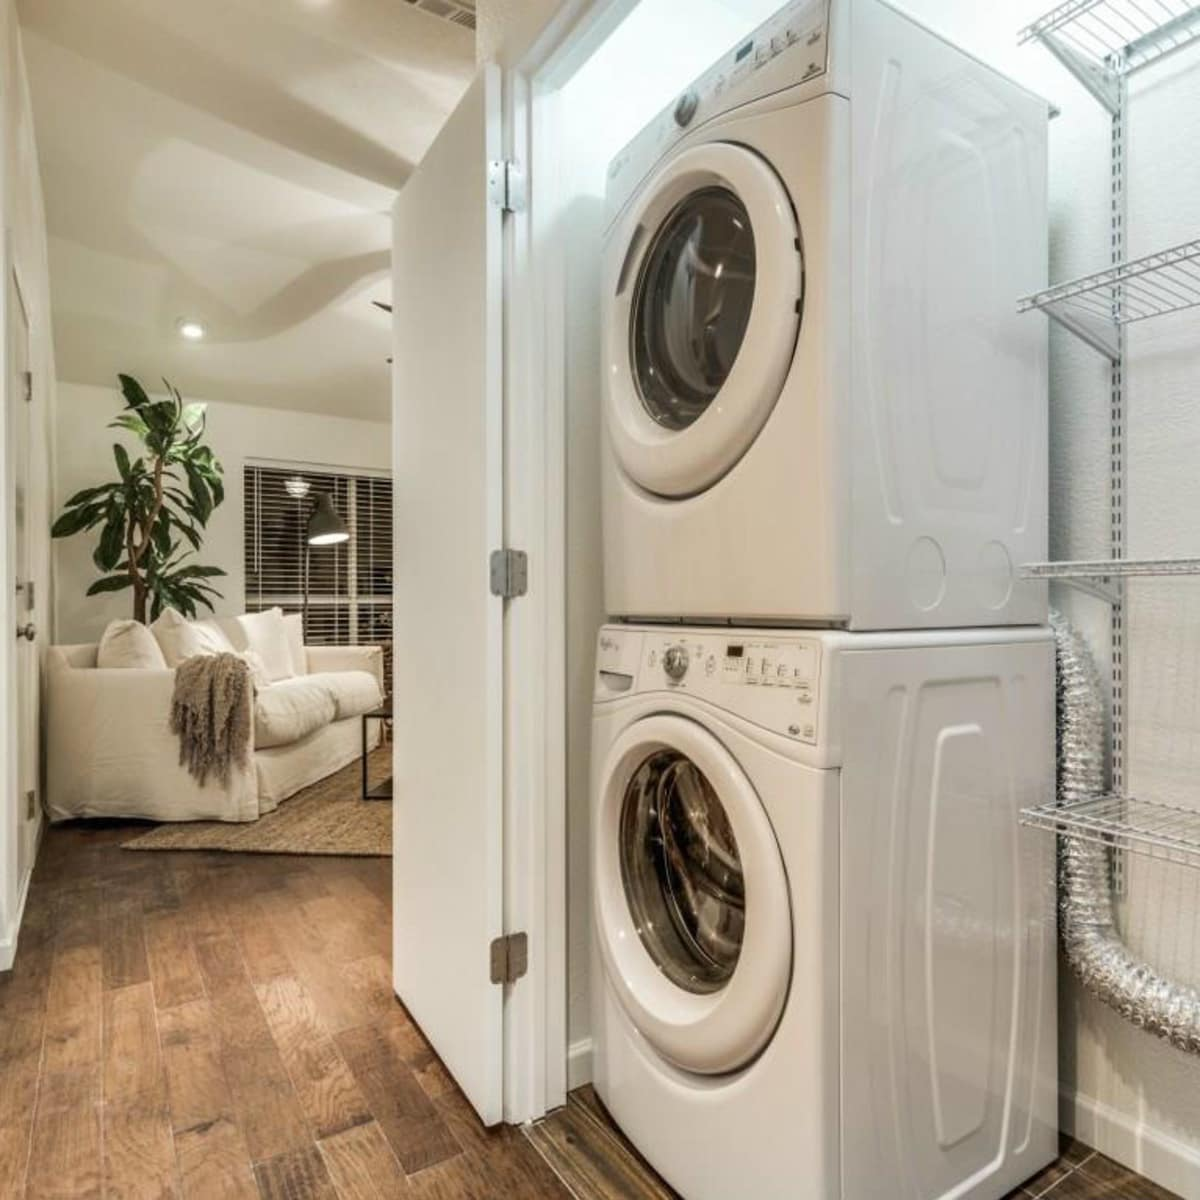 1639 Homewood Pl Dallas house for sale laundry room